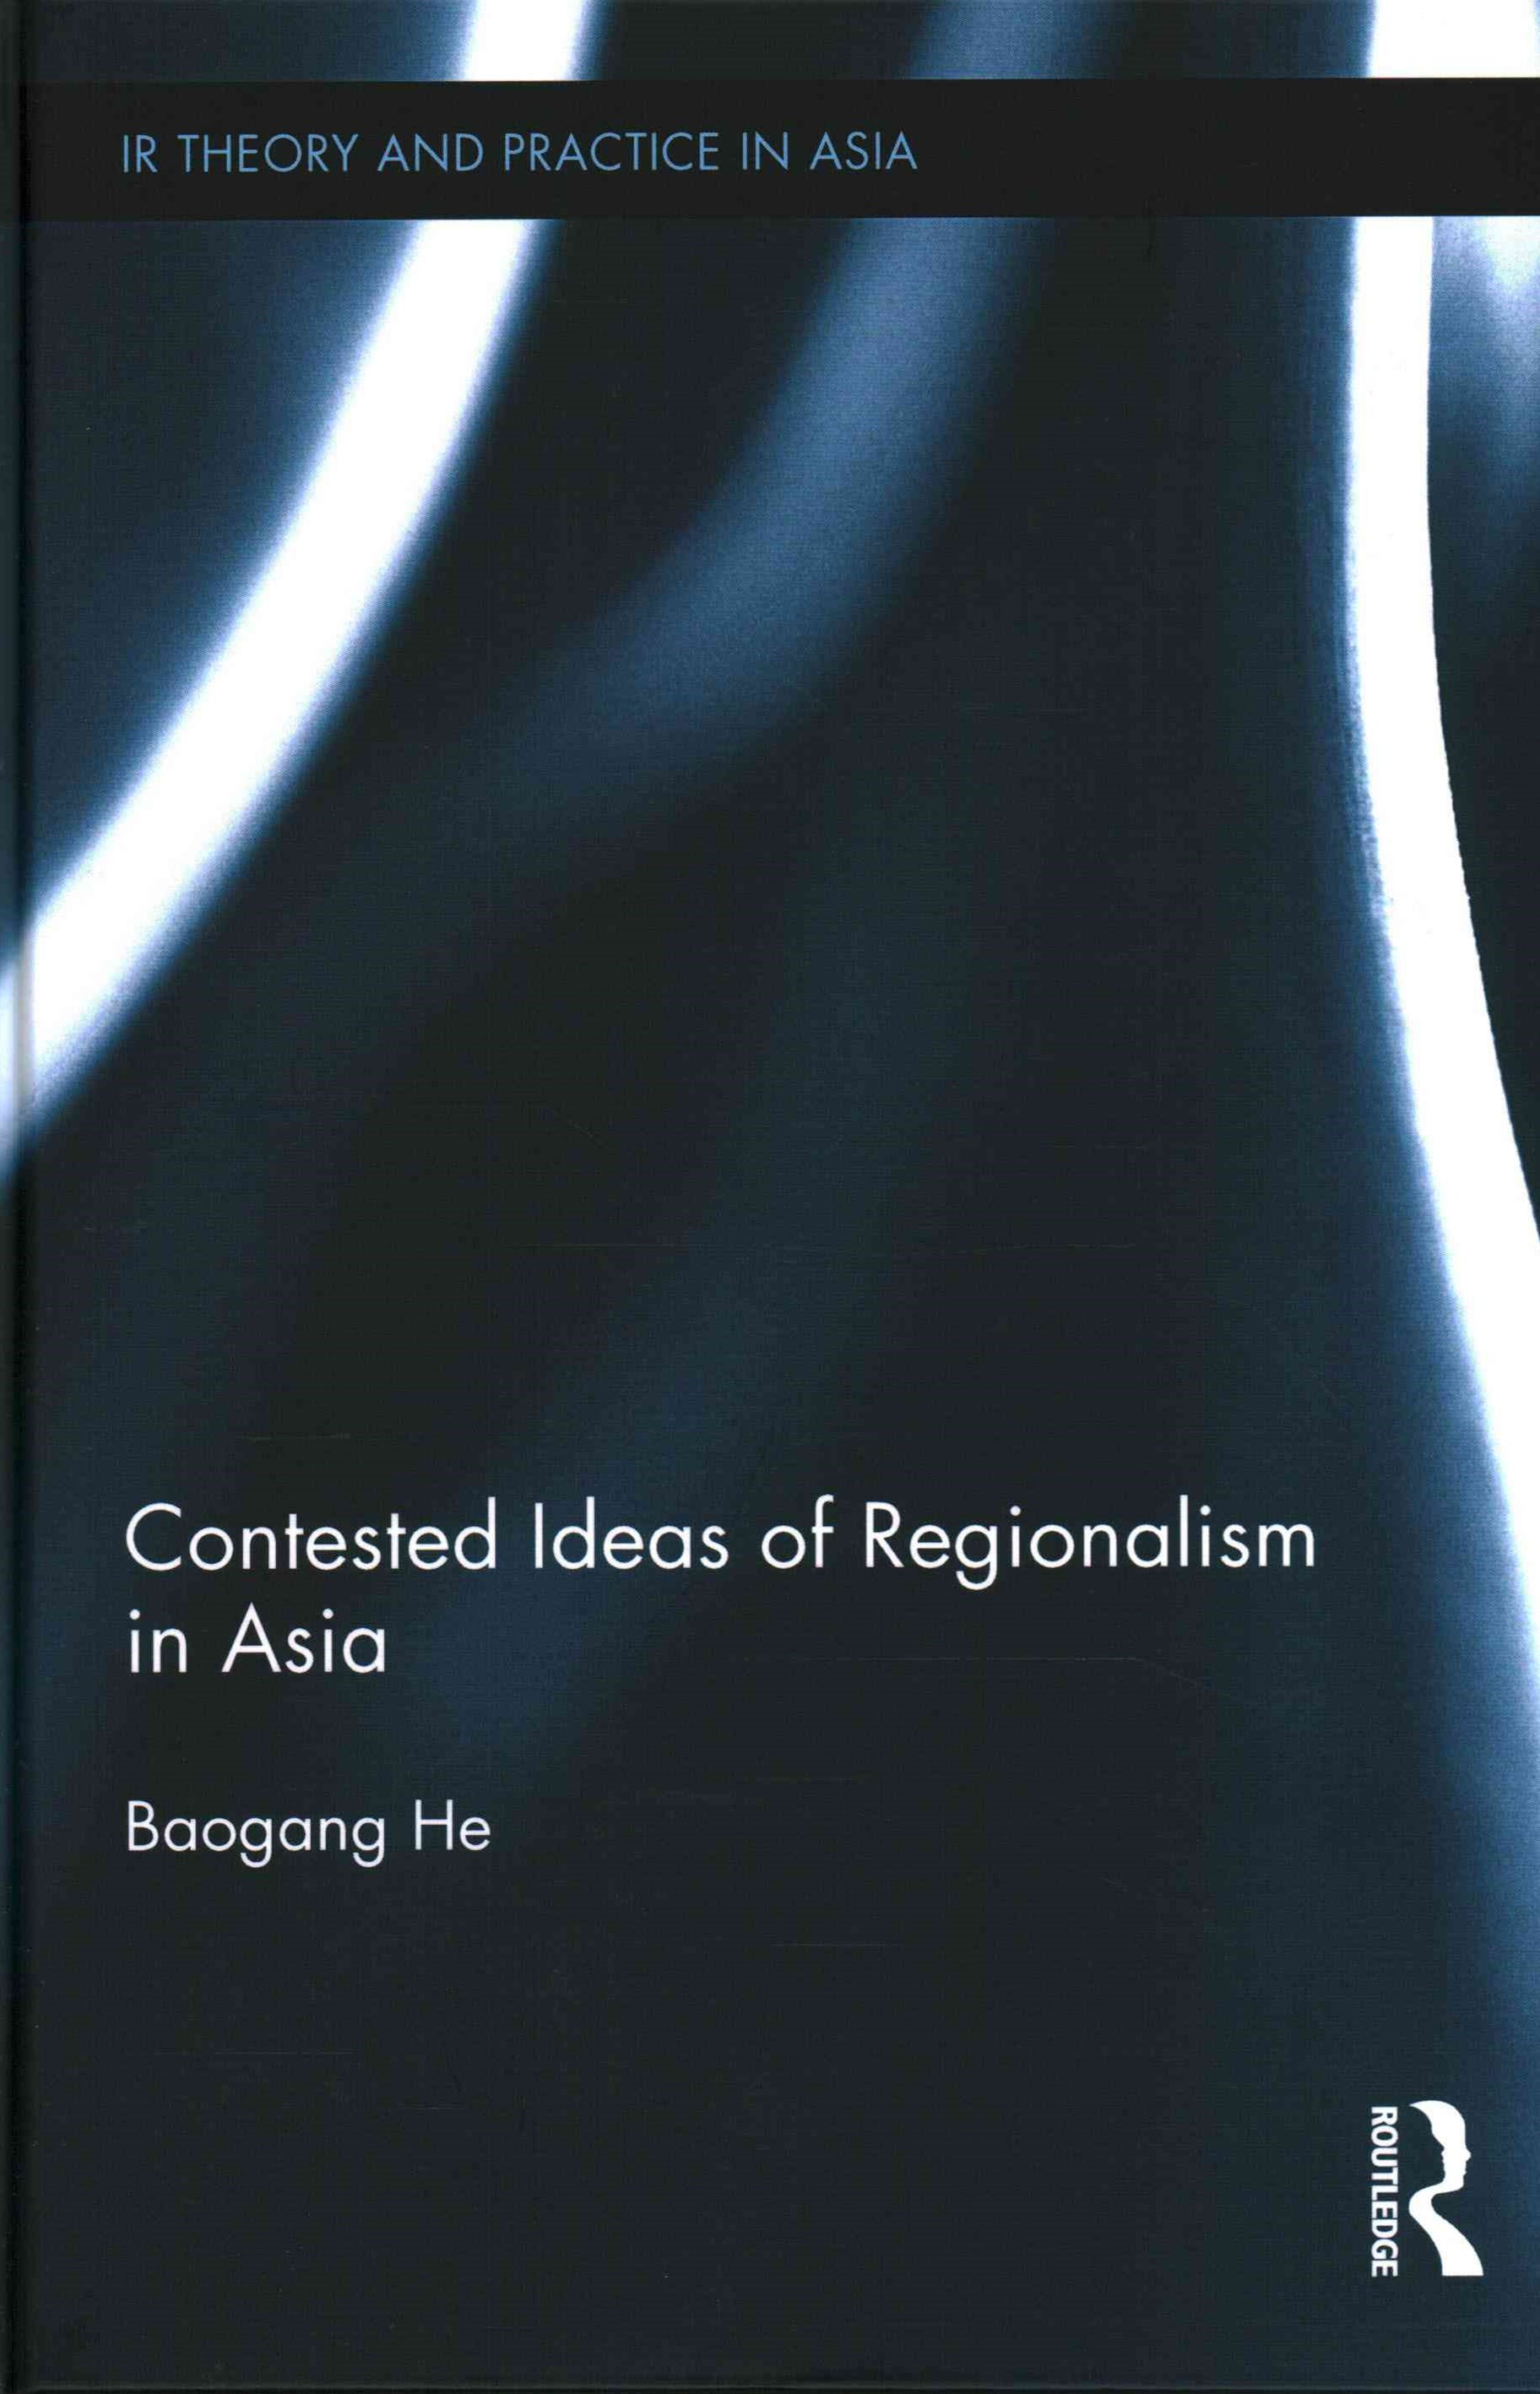 Contested Ideas of Regionalism in Asia